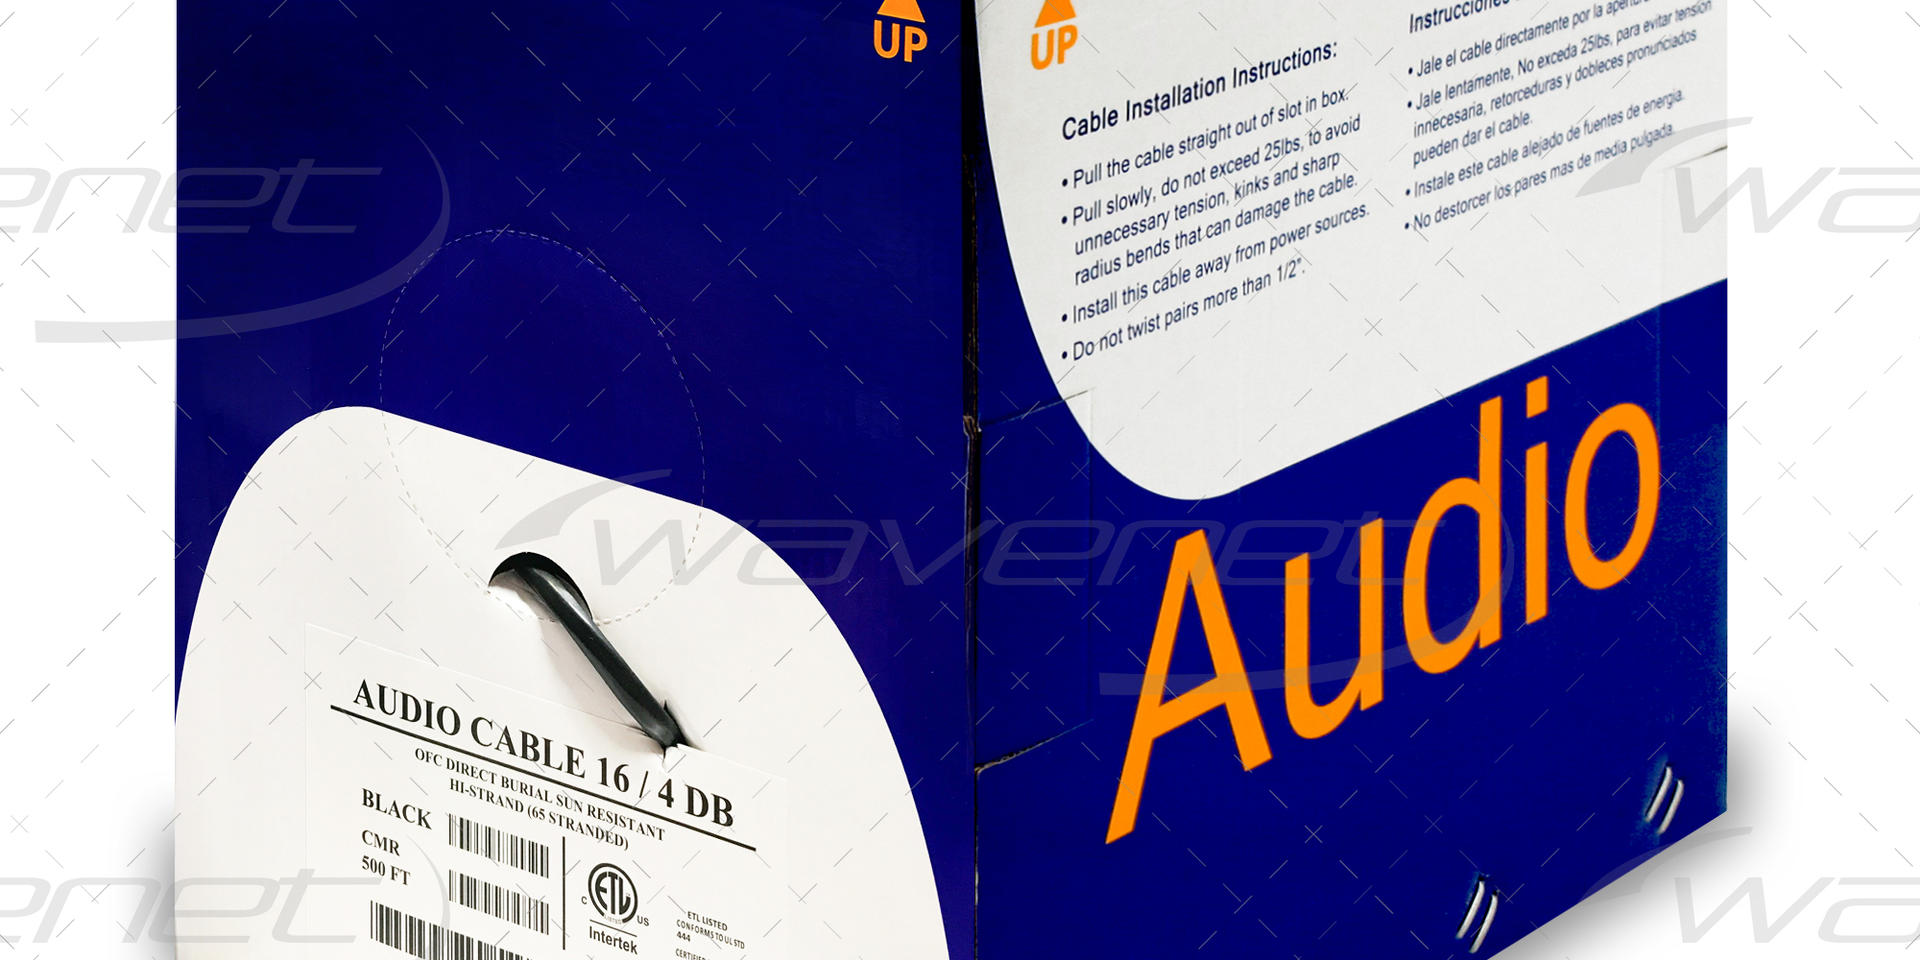 AUDIO CABLE 16/4 DB UV RATED 500'